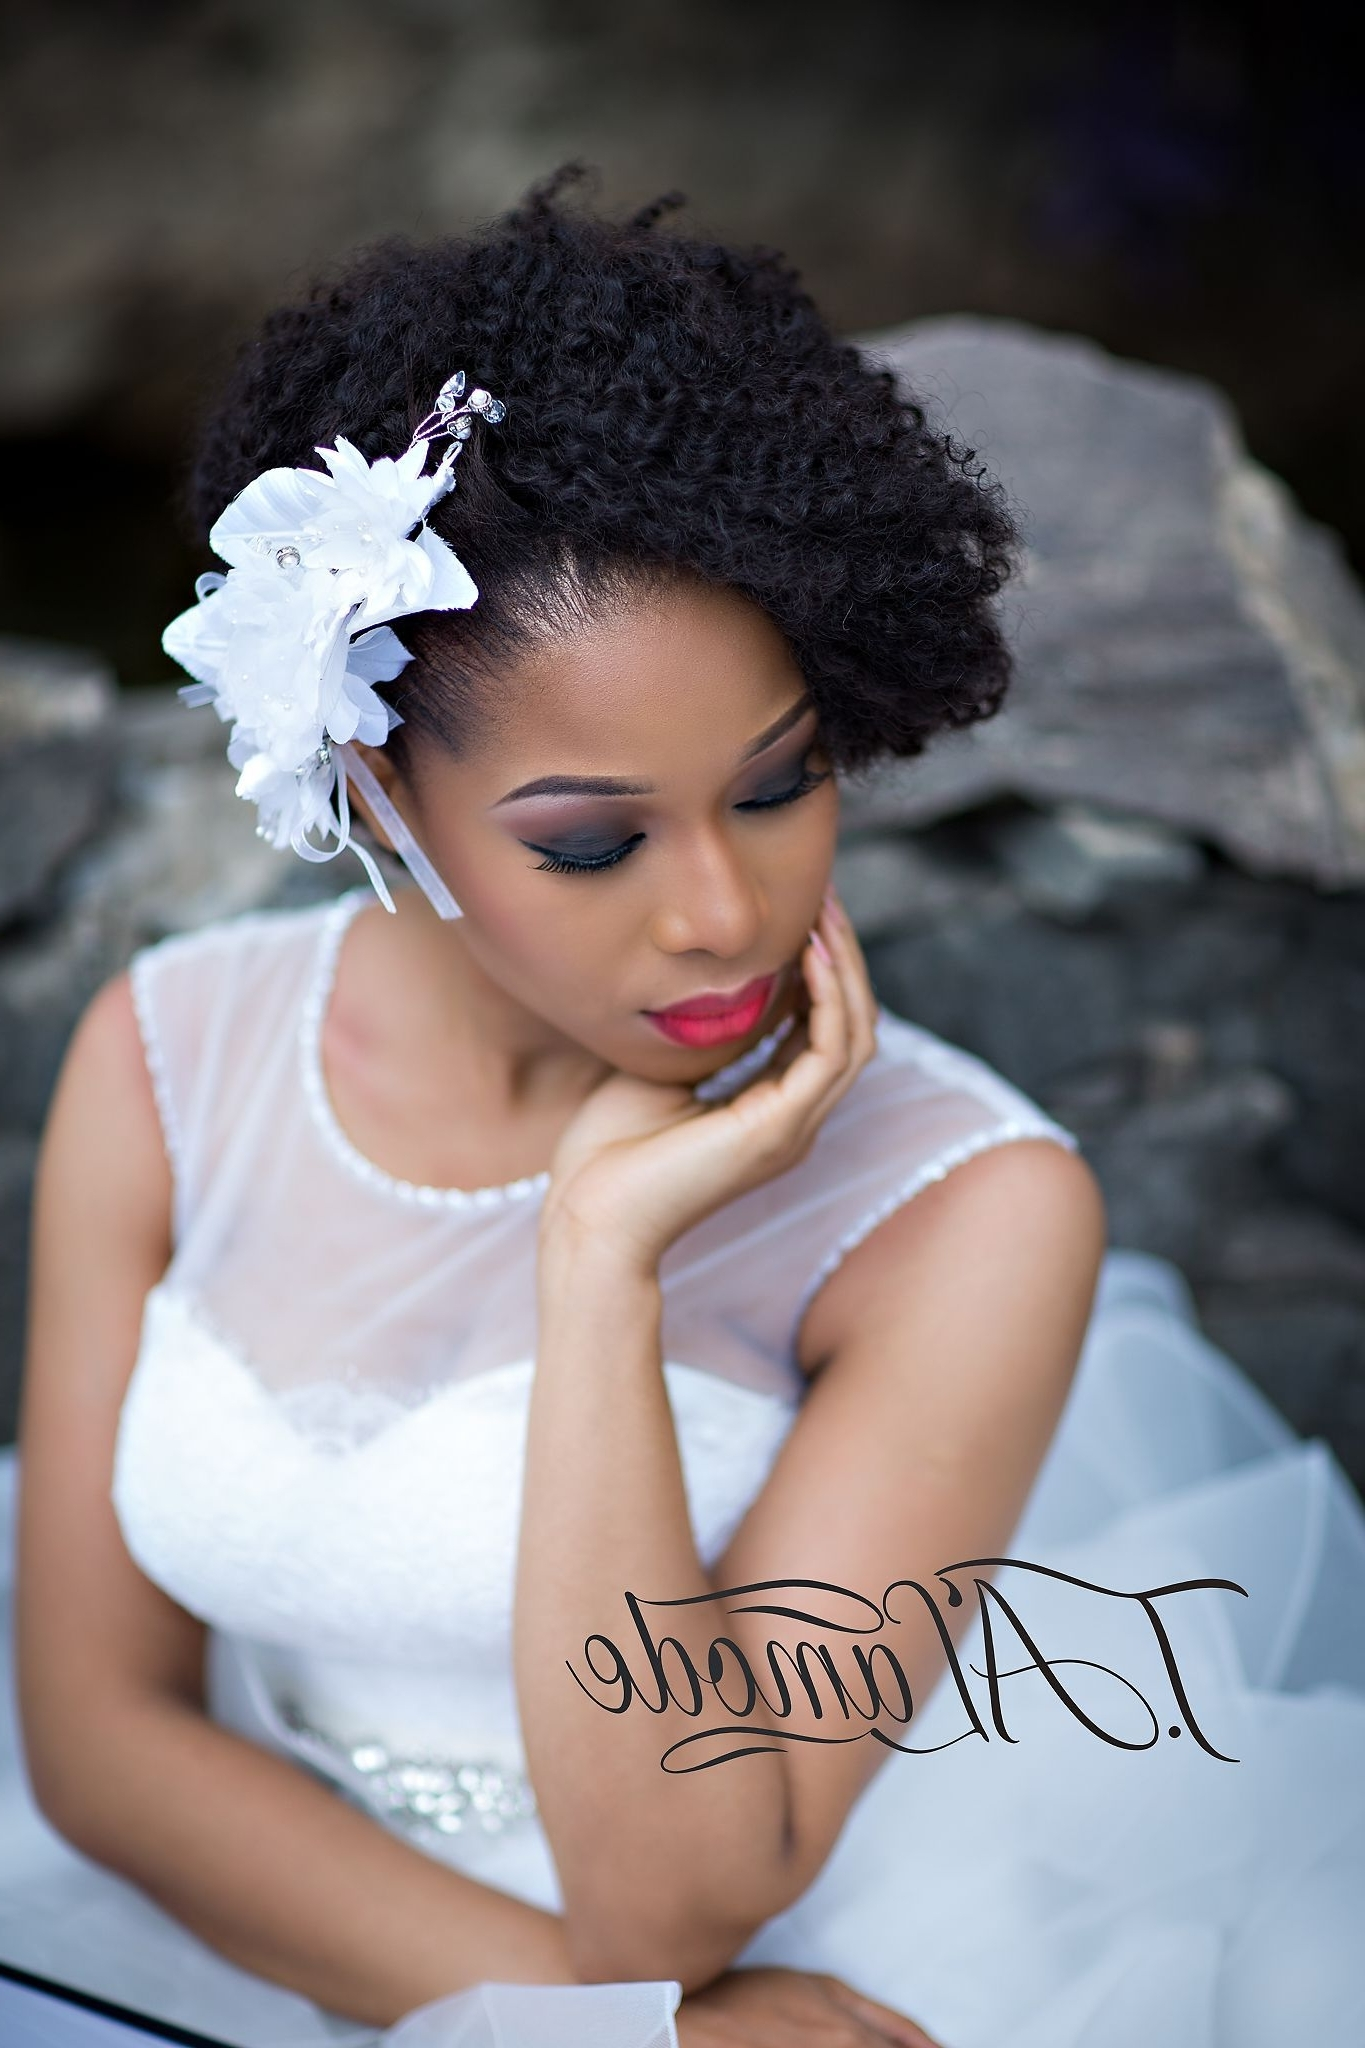 Best Nigerian Bridal Natural Hair And Makeup Shoot Black Bride Of With Trendy Nigerian Wedding Hairstyles For Bridesmaids (View 9 of 15)